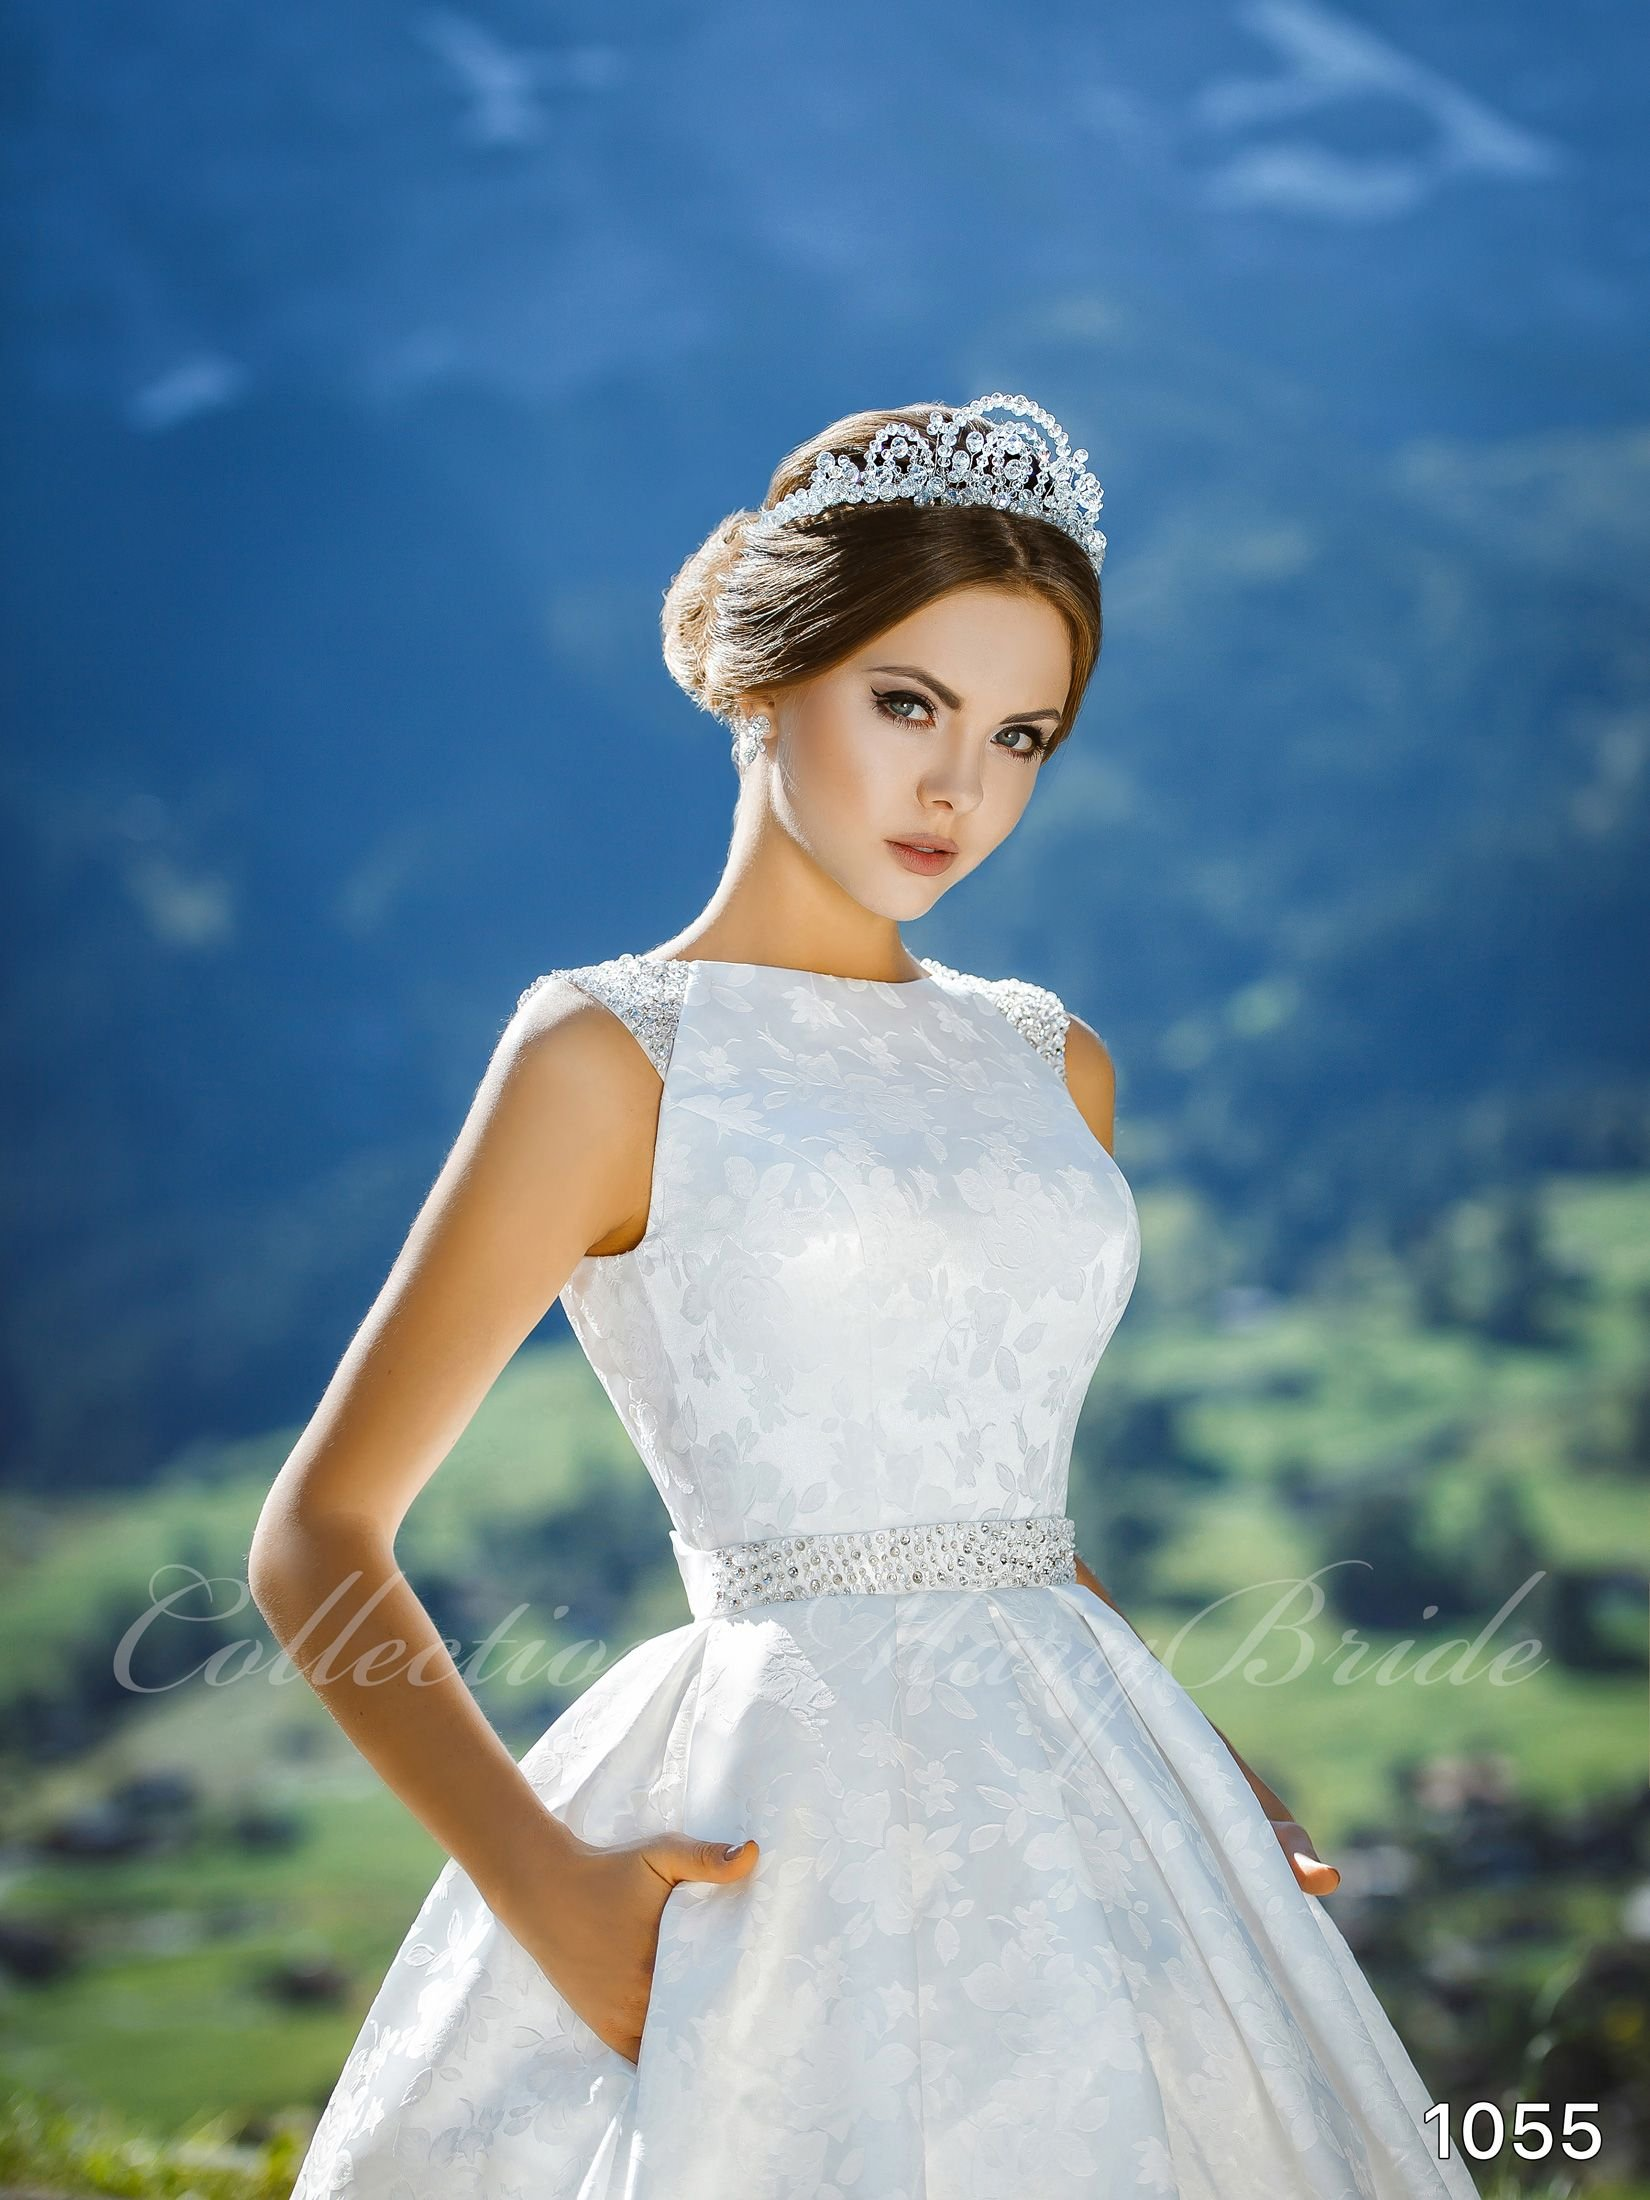 Outstanding Mary Wedding Gowns Collection - Womens Dresses & Gowns ...